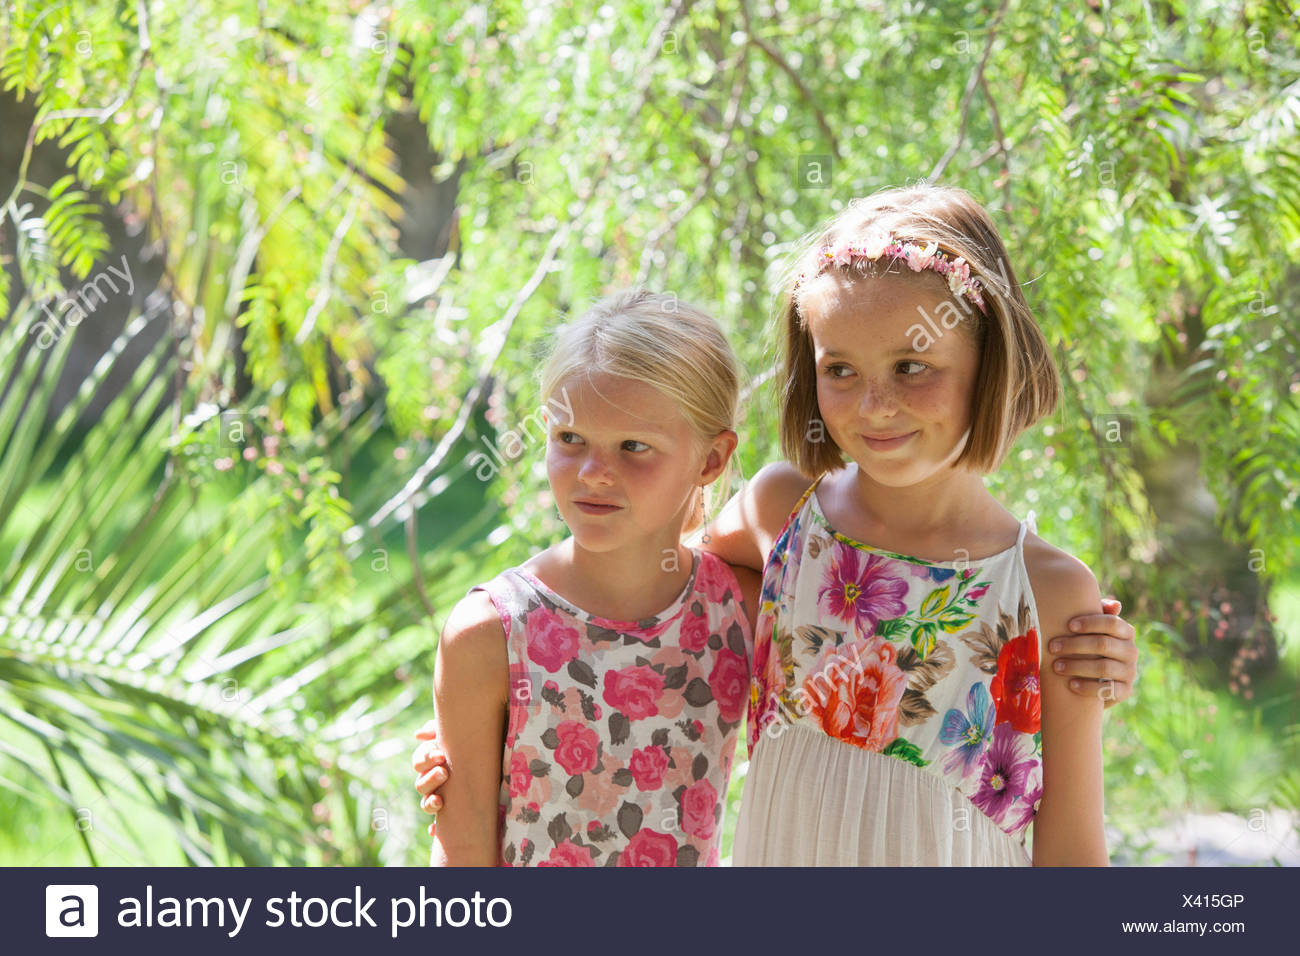 Candid portrait of two girls looking away in garden Stock Photo